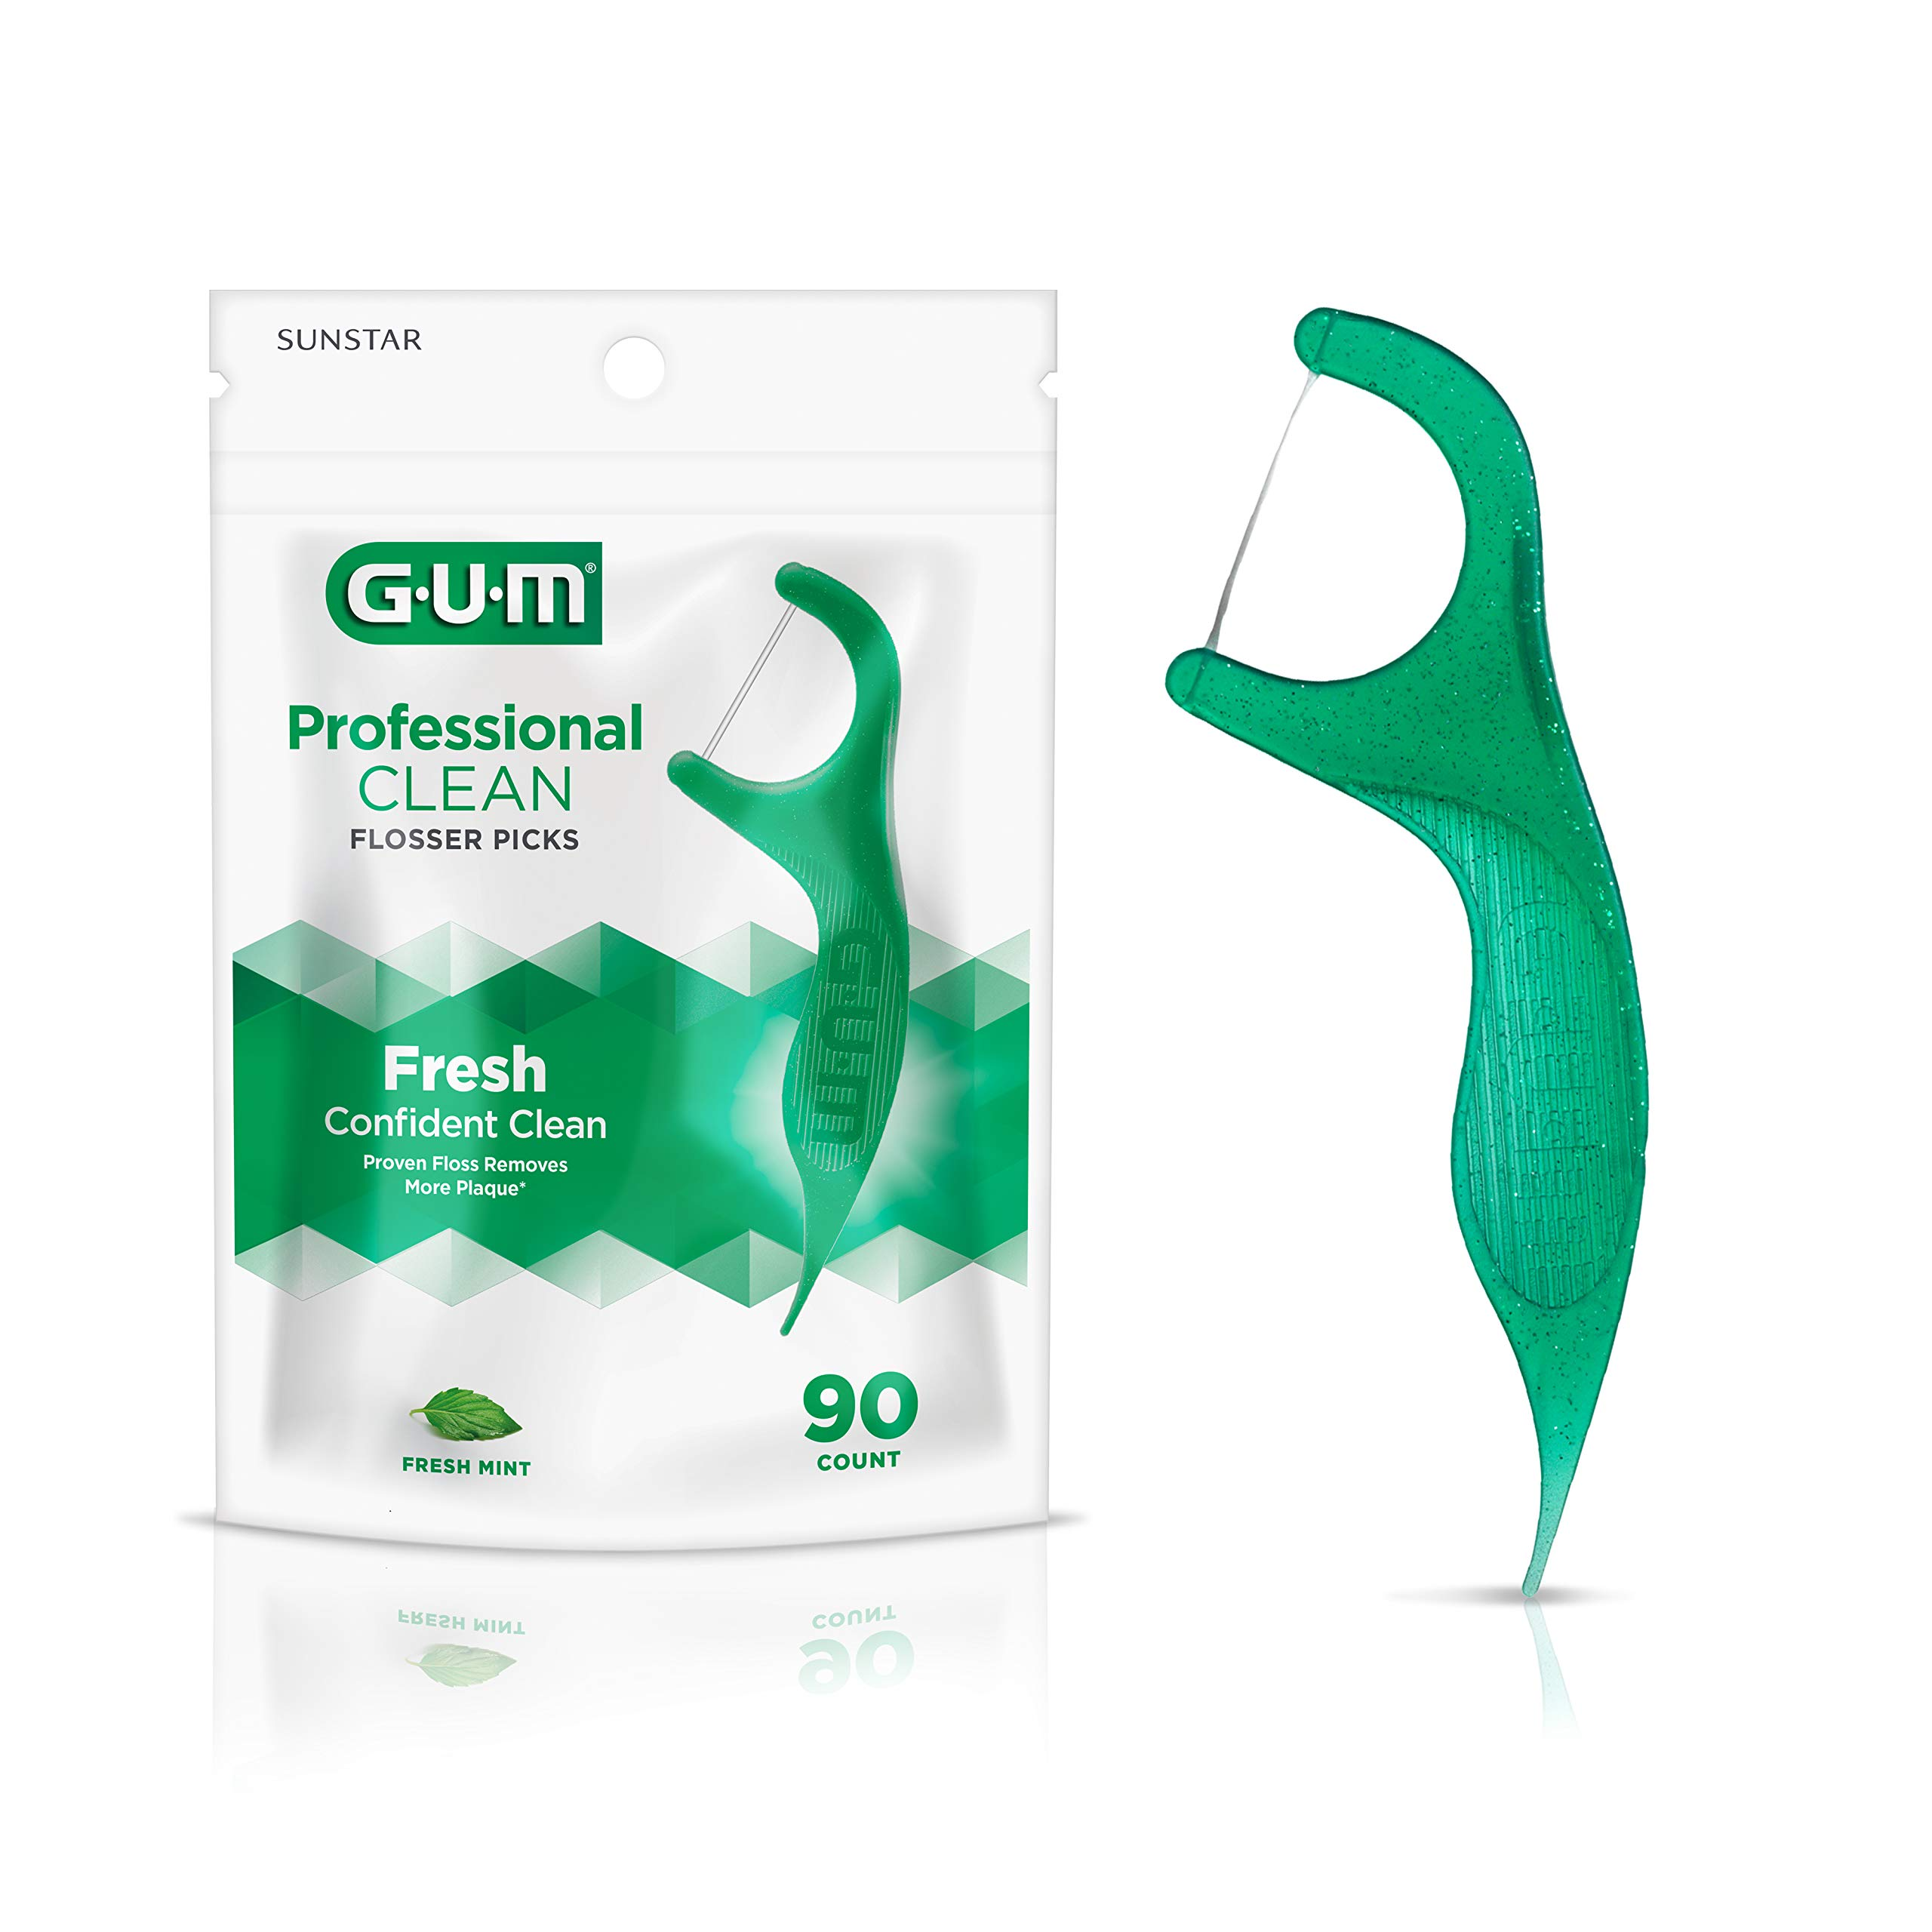 GUM - 70942302395 Professional Clean Flossers Extra Strong Flosser Pick, Fresh Mint, 90 Count (Pack of 6)